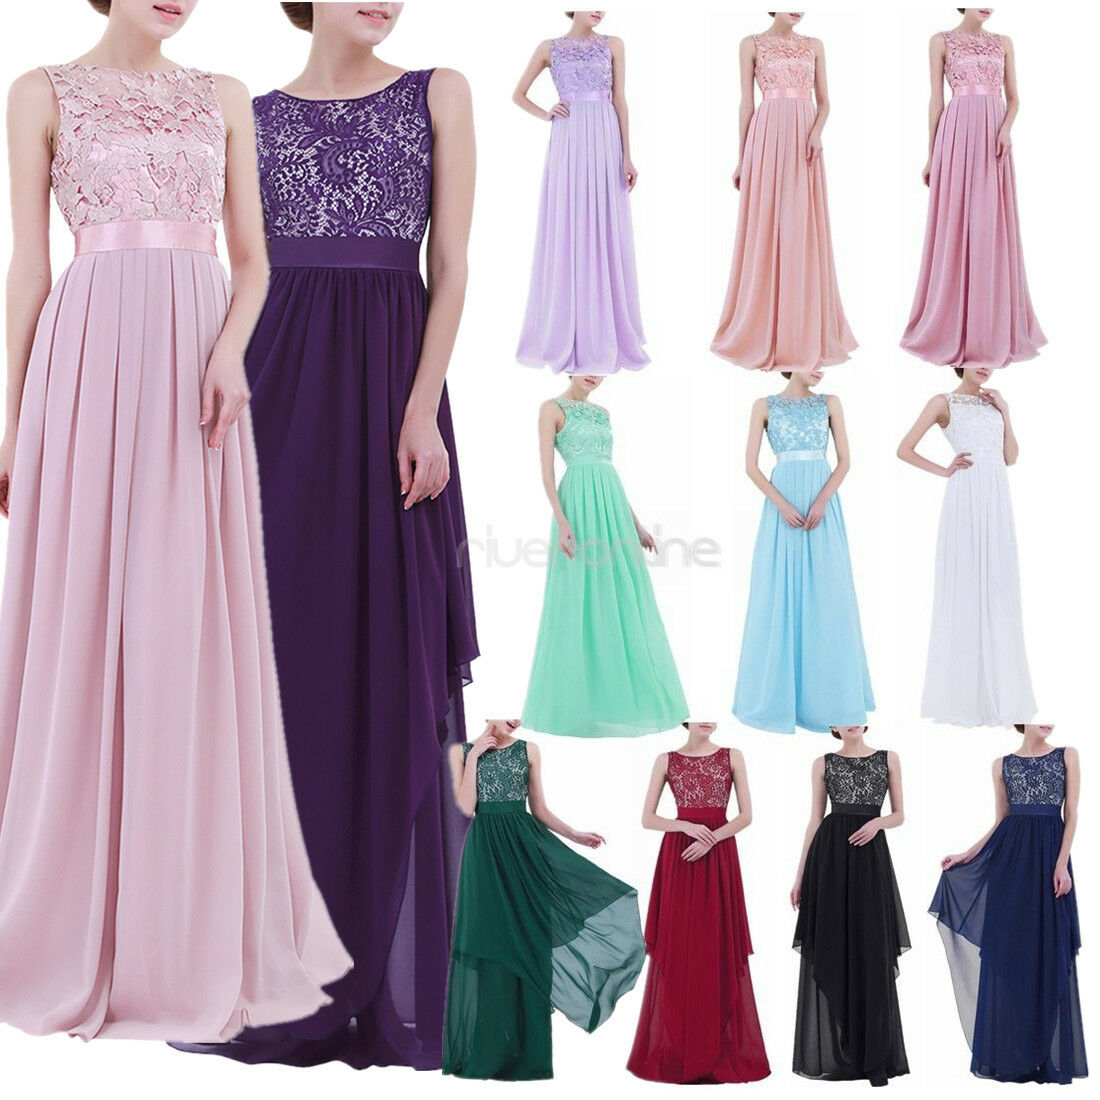 Women Long Maxi Chiffon Dress Bridesmaid Dress Prom Gown Evening Party Cocktail